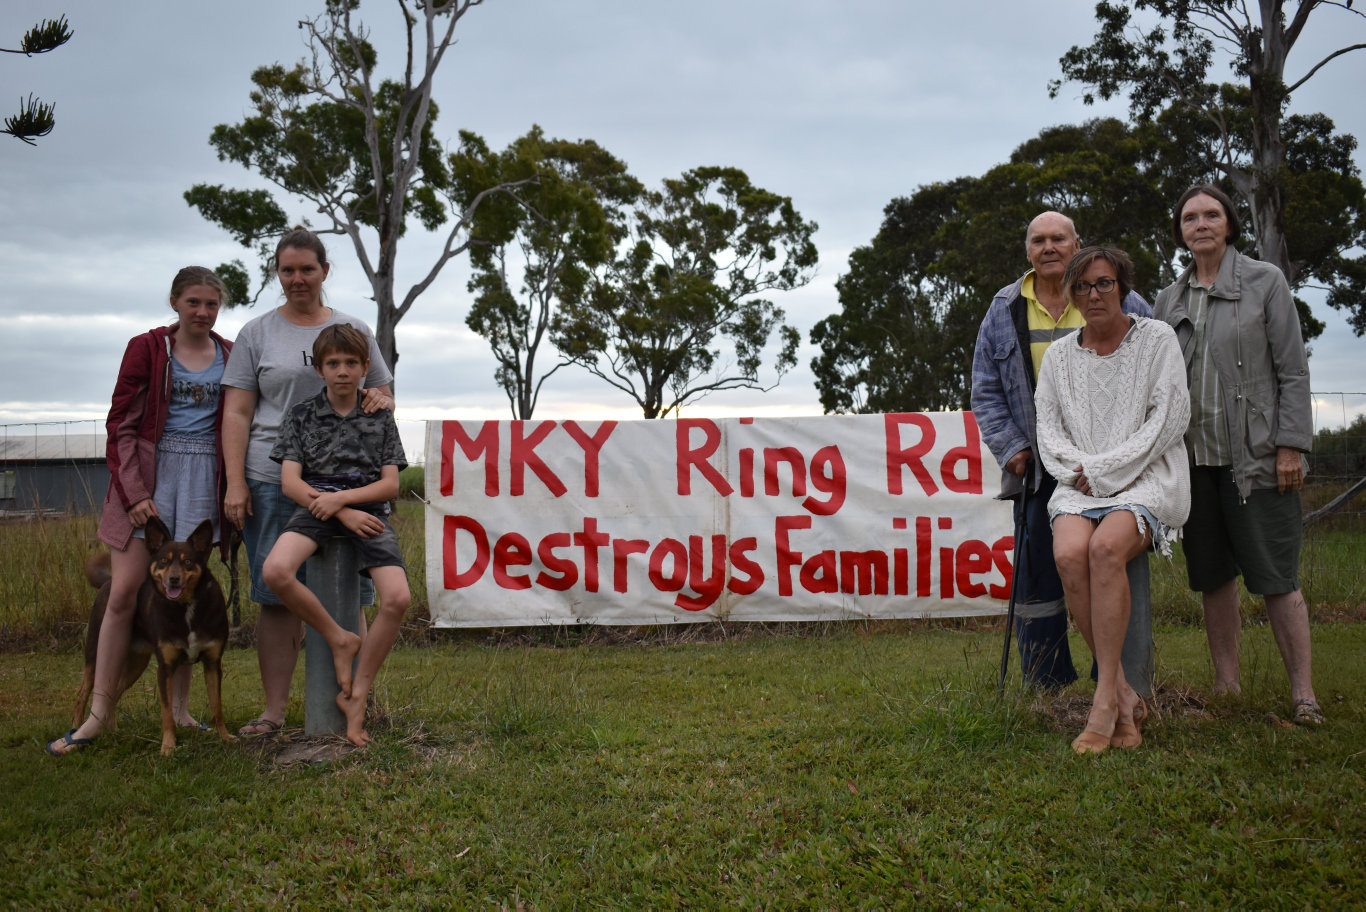 Christina Brown, 12, left, Mandy Brown, Joey Brown, 9, and Champ the red kelpie with James Schmidtke, Trudy Schmidtke and Terry Schmidtke near their sign protesting the Mackay Ring Road's opening.